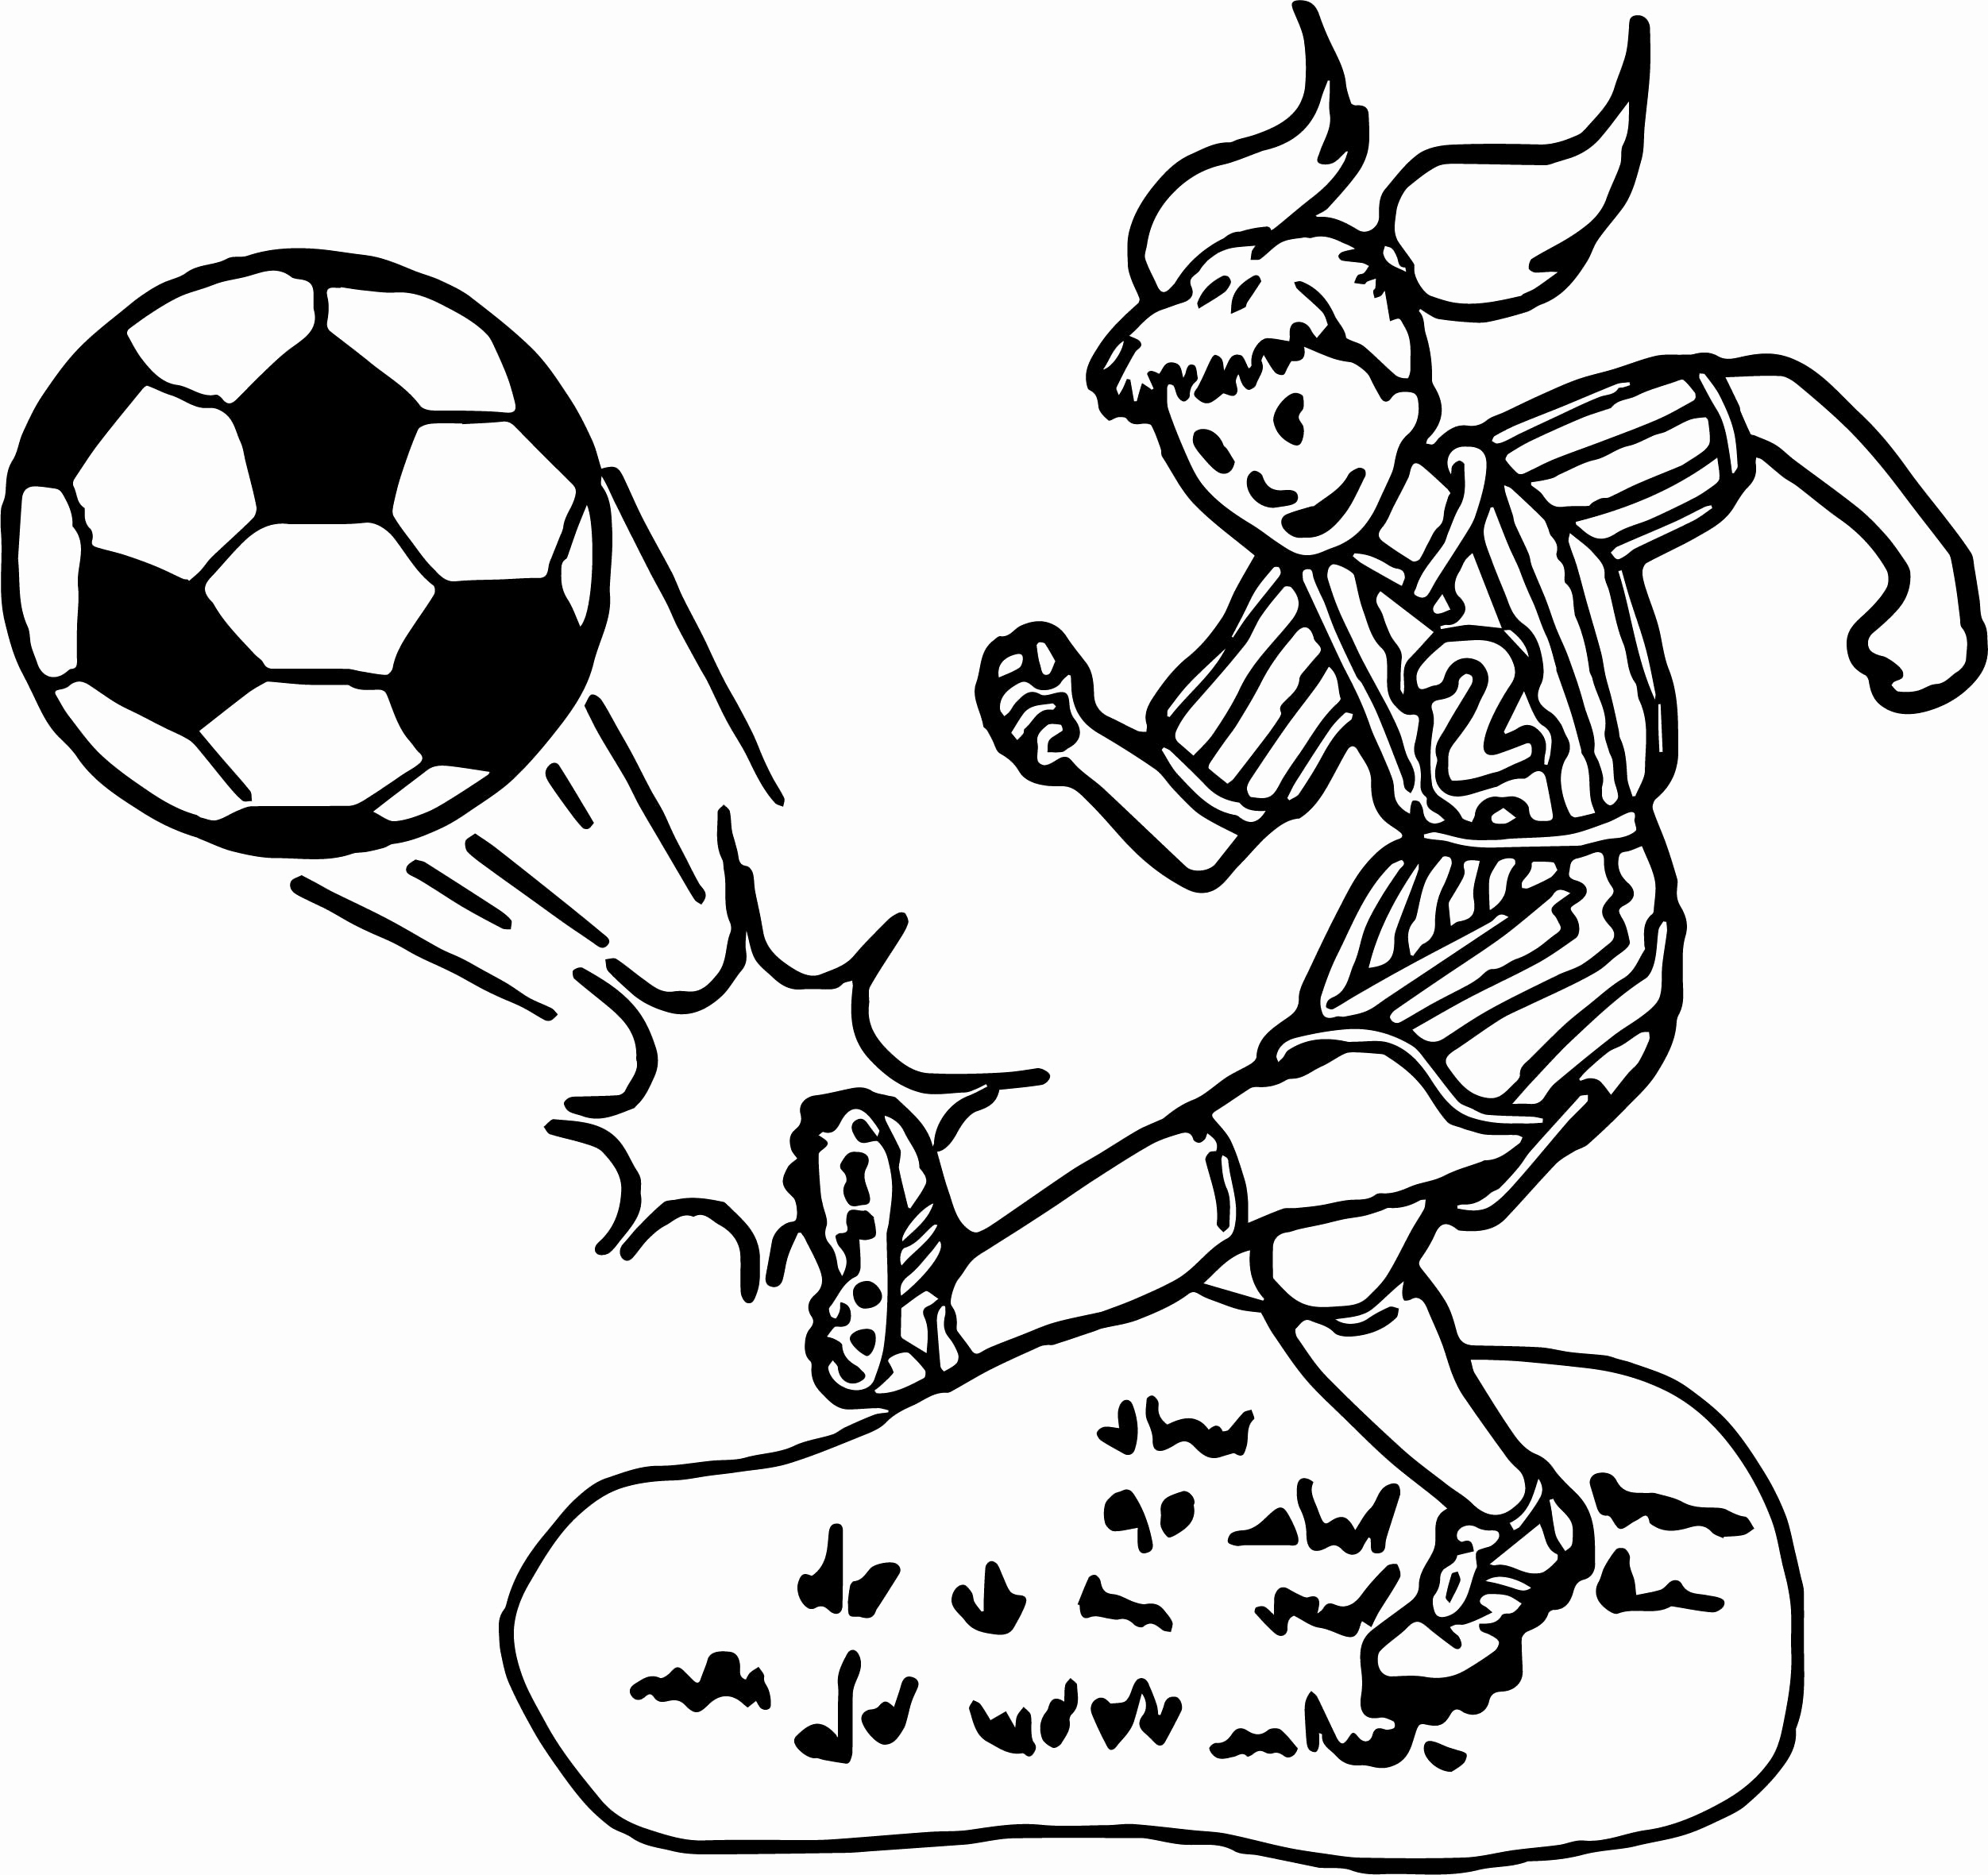 Girl Playing Soccer Coloring Pages at GetDrawings   Free download